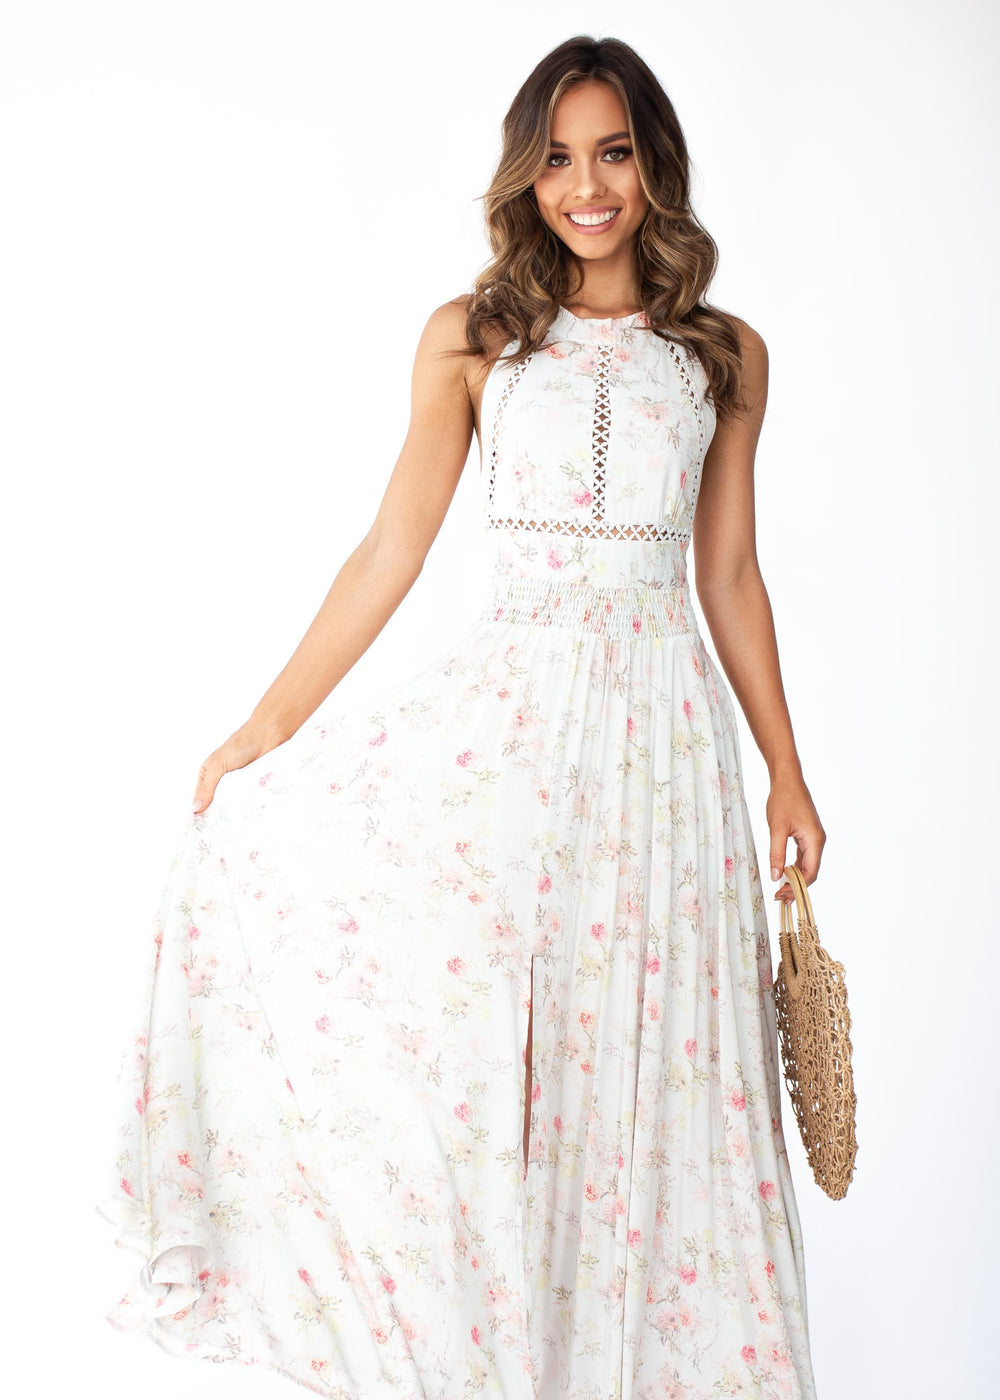 Break Of Dawn Maxi Dress - Last Dance - Jaase